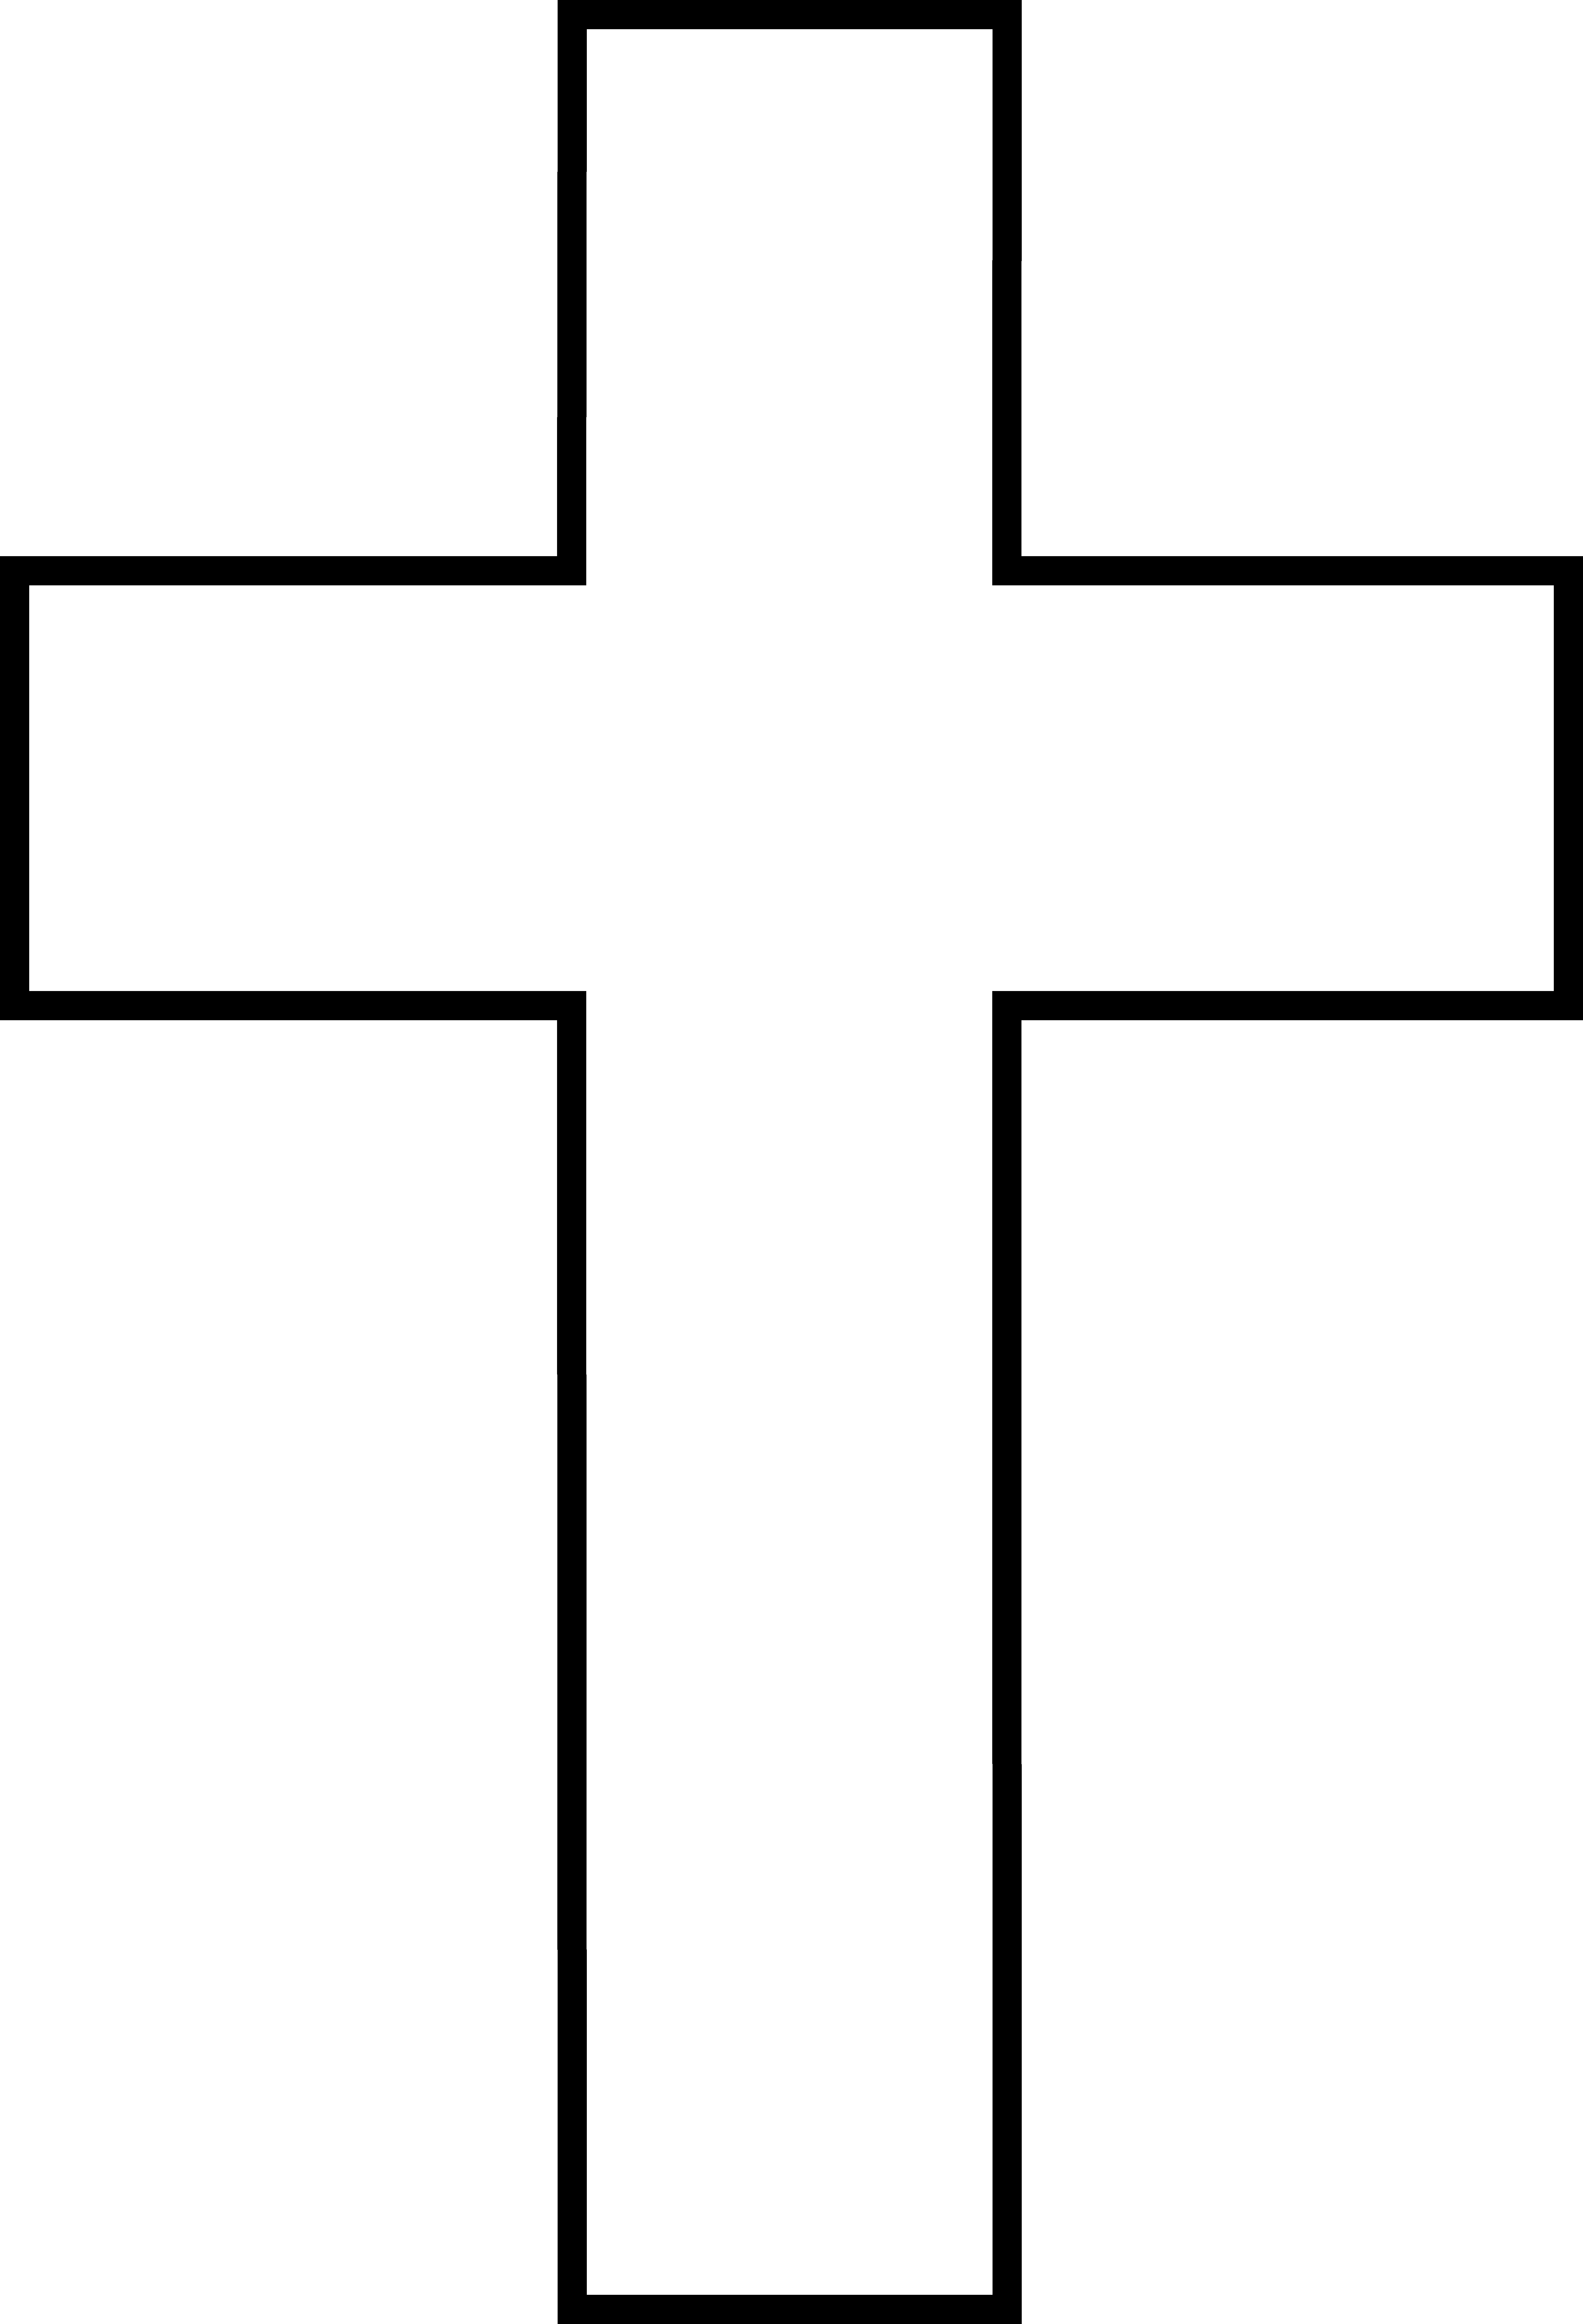 clipart freeuse download Image of clip art. Christian cross clipart black and white